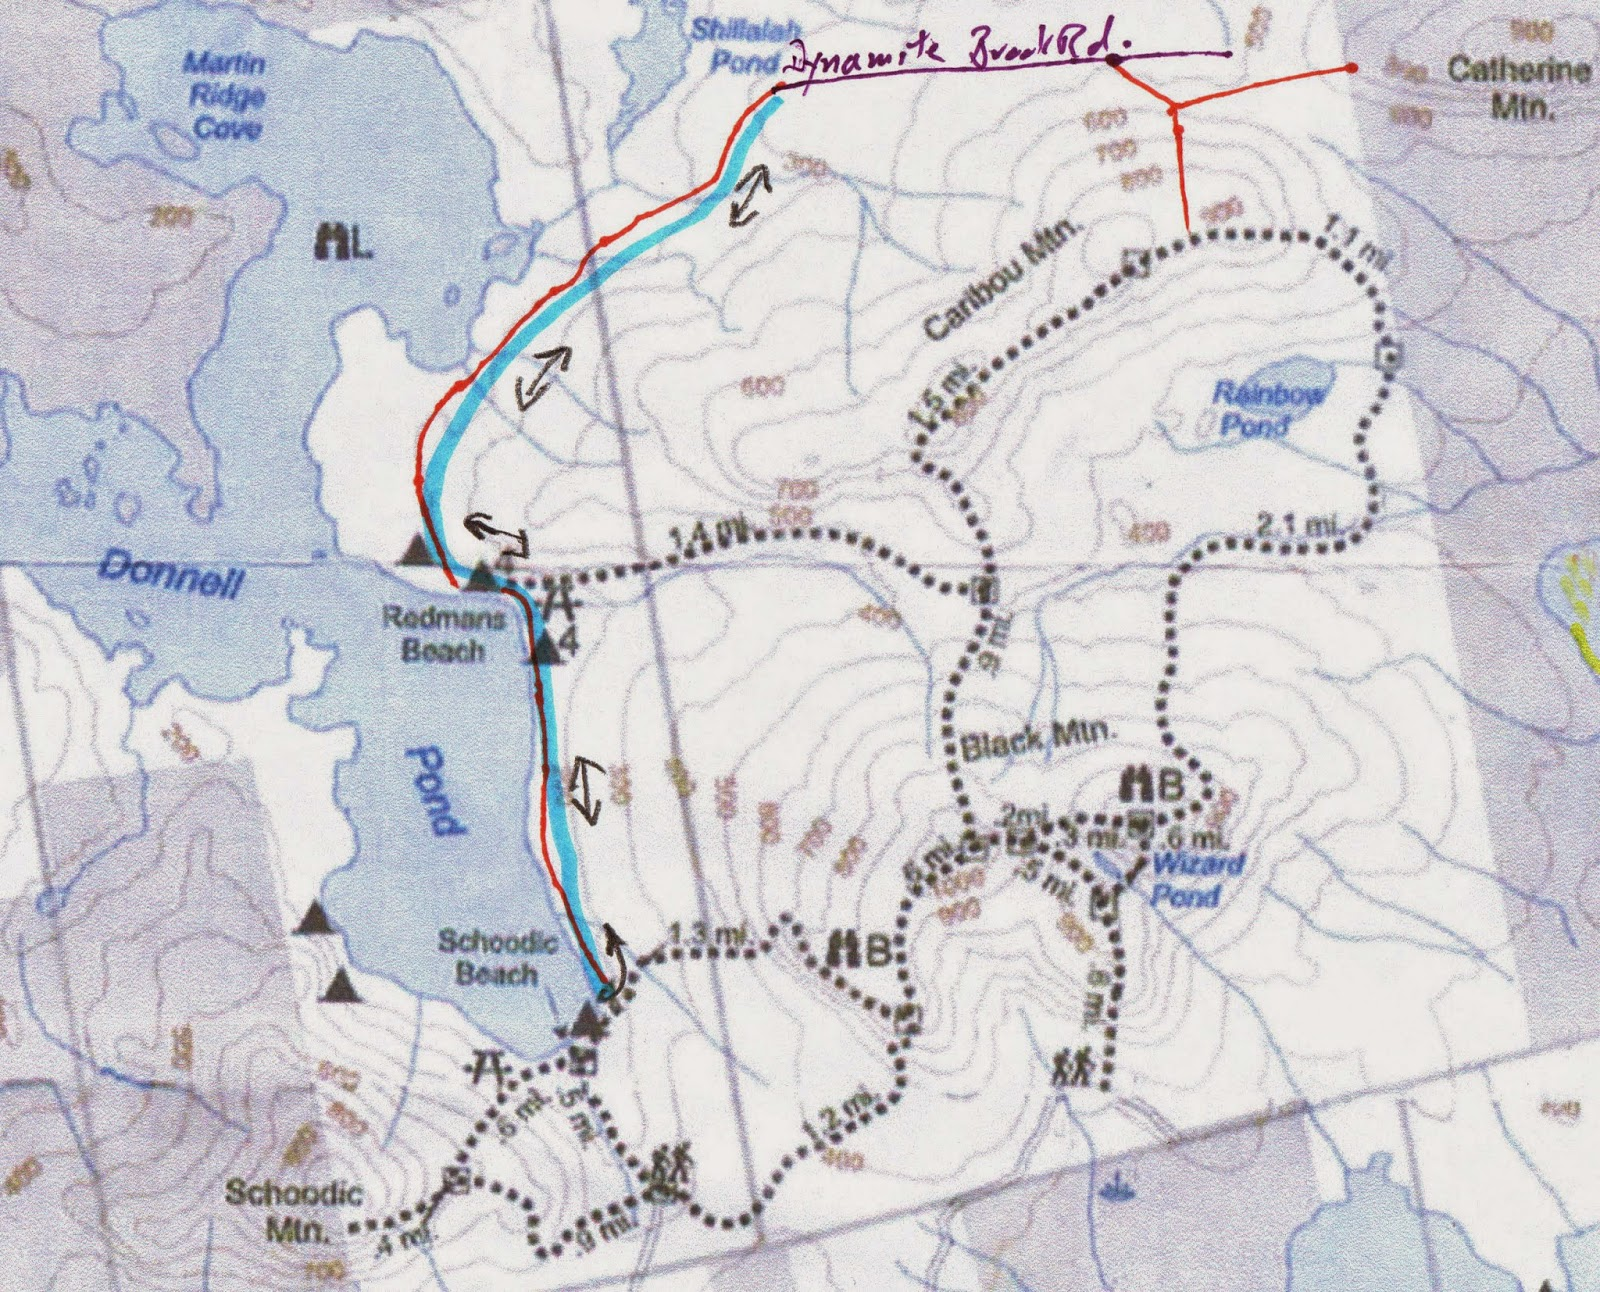 Donnell Pond Maine Map | Zip Code Map